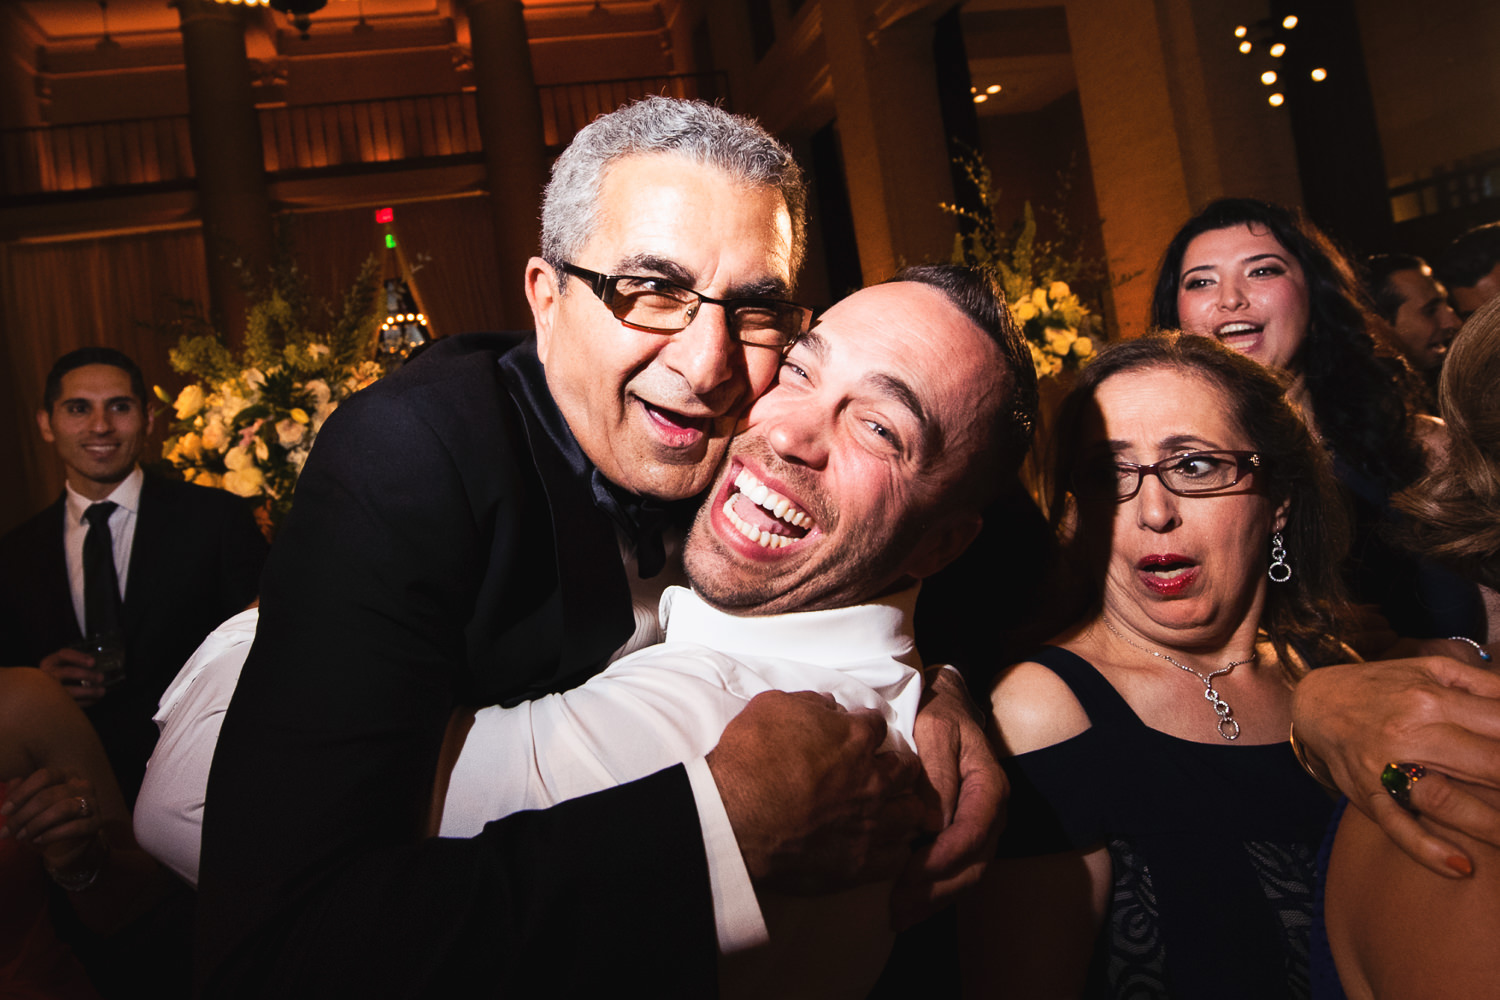 Crazy times at this Bently Reserve Wedding